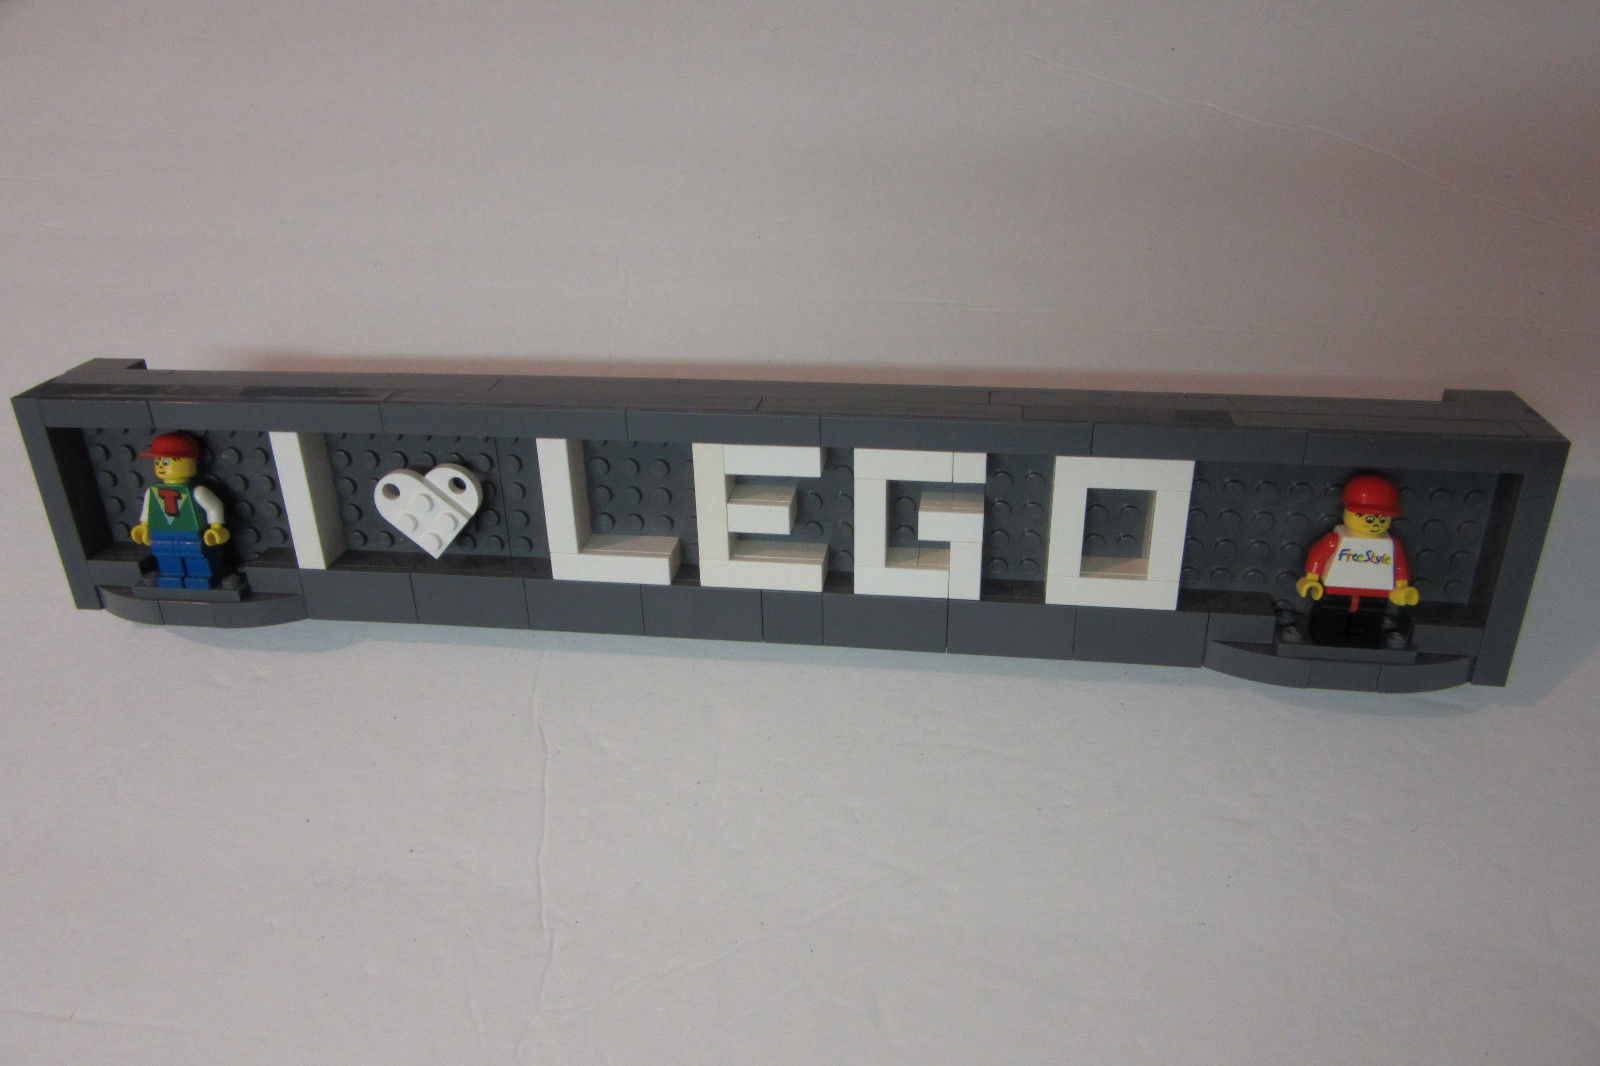 LEGO Custom  I Love Lego  Name Plate Desk and 50 similar items LEGO Custom  I Love Lego  Name Plate Desk Display Sign Holder w  2 Minifigs